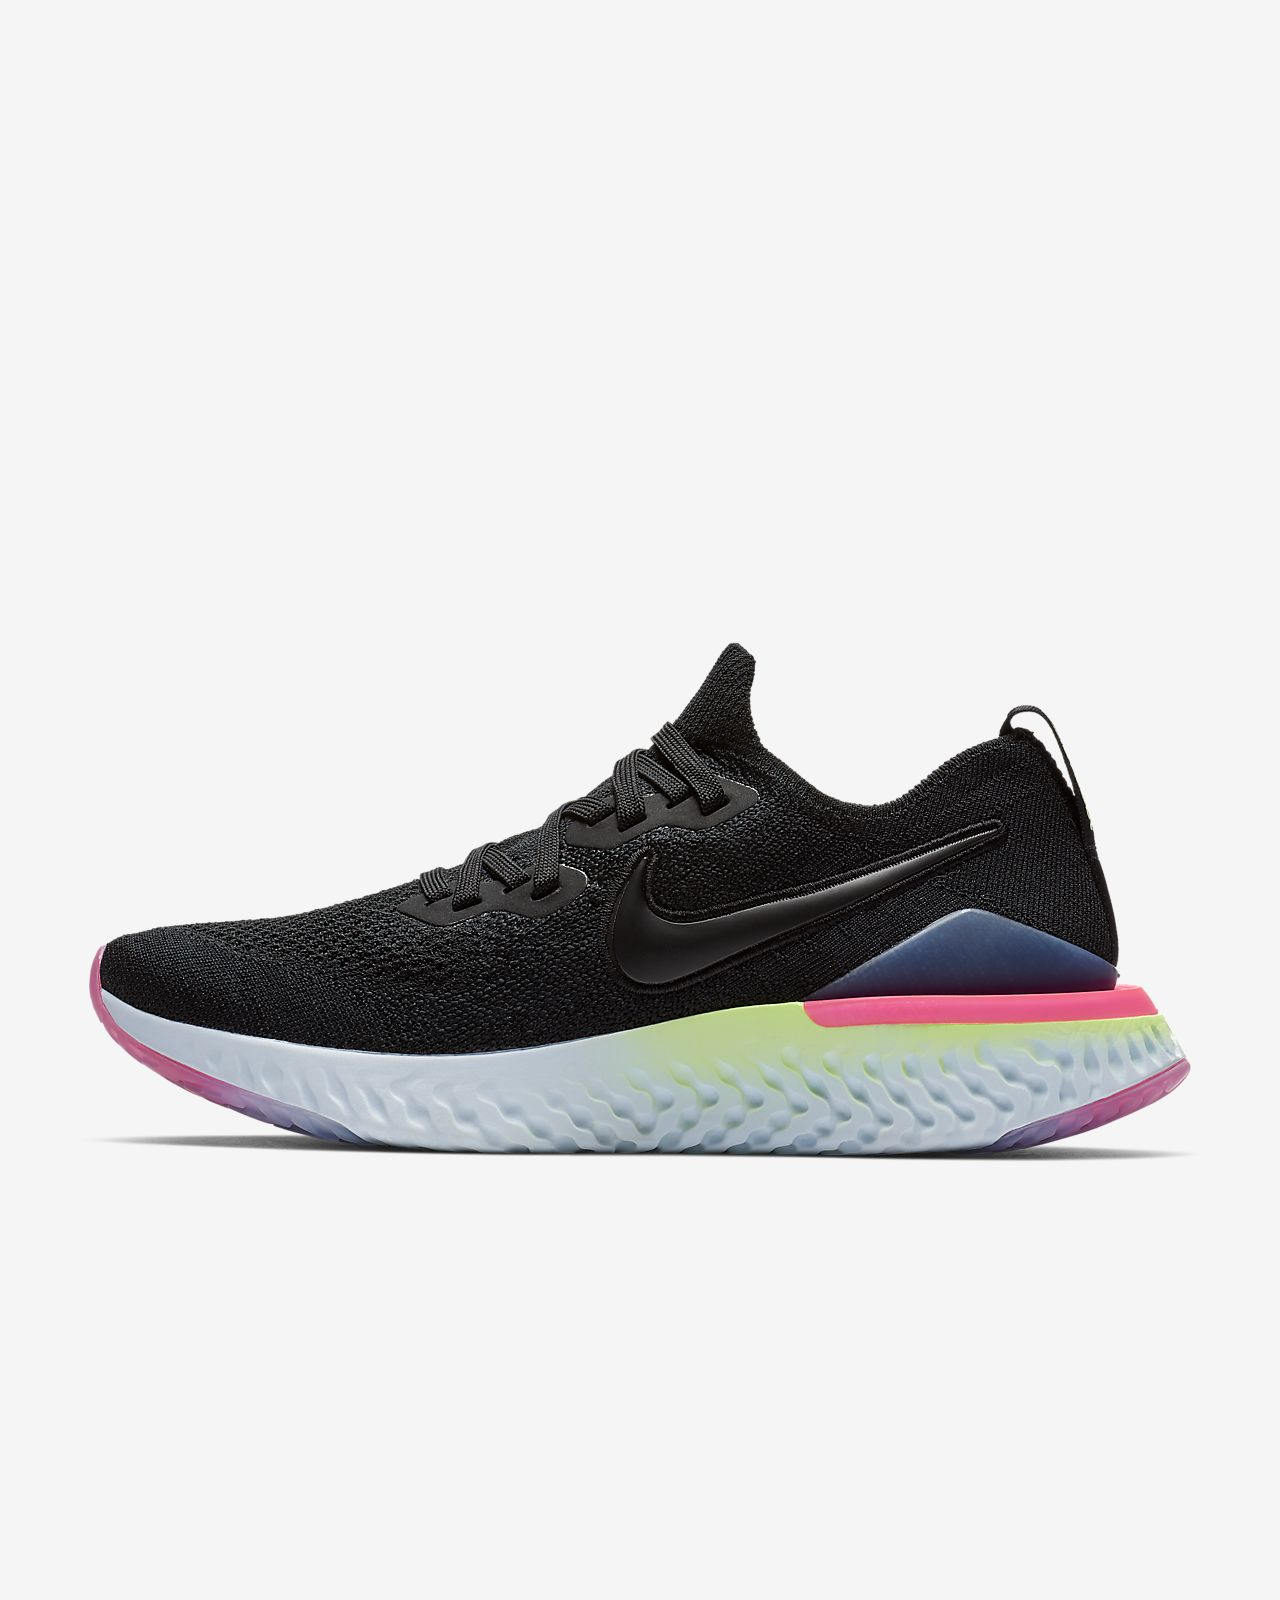 a6757e6323b05 Nike Epic React Flyknit 2 Women s Running Shoe. Nike.com